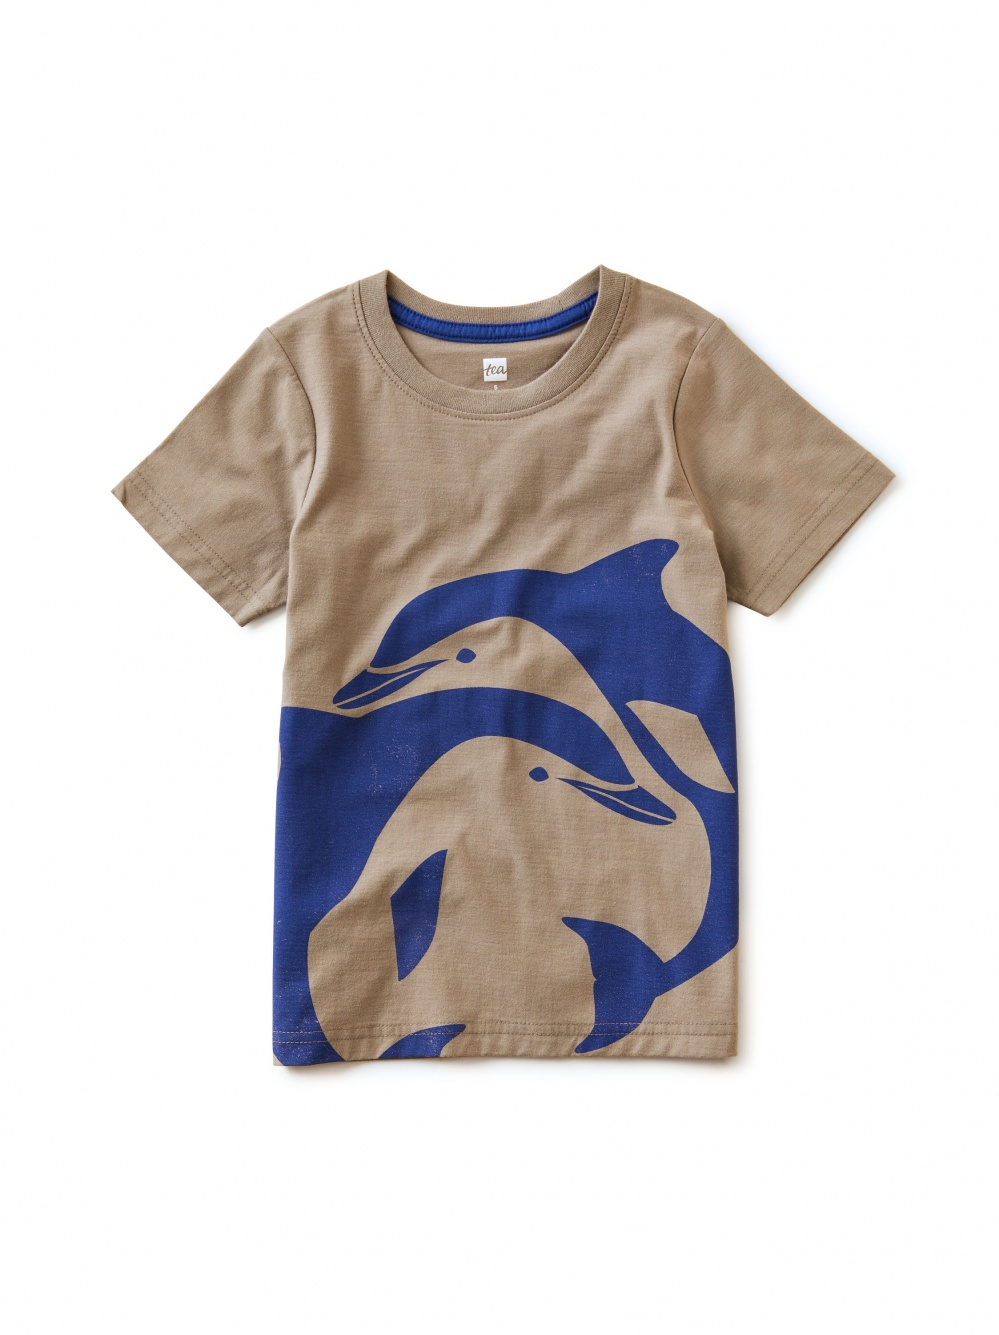 Minoan Dolphins Graphic Tee